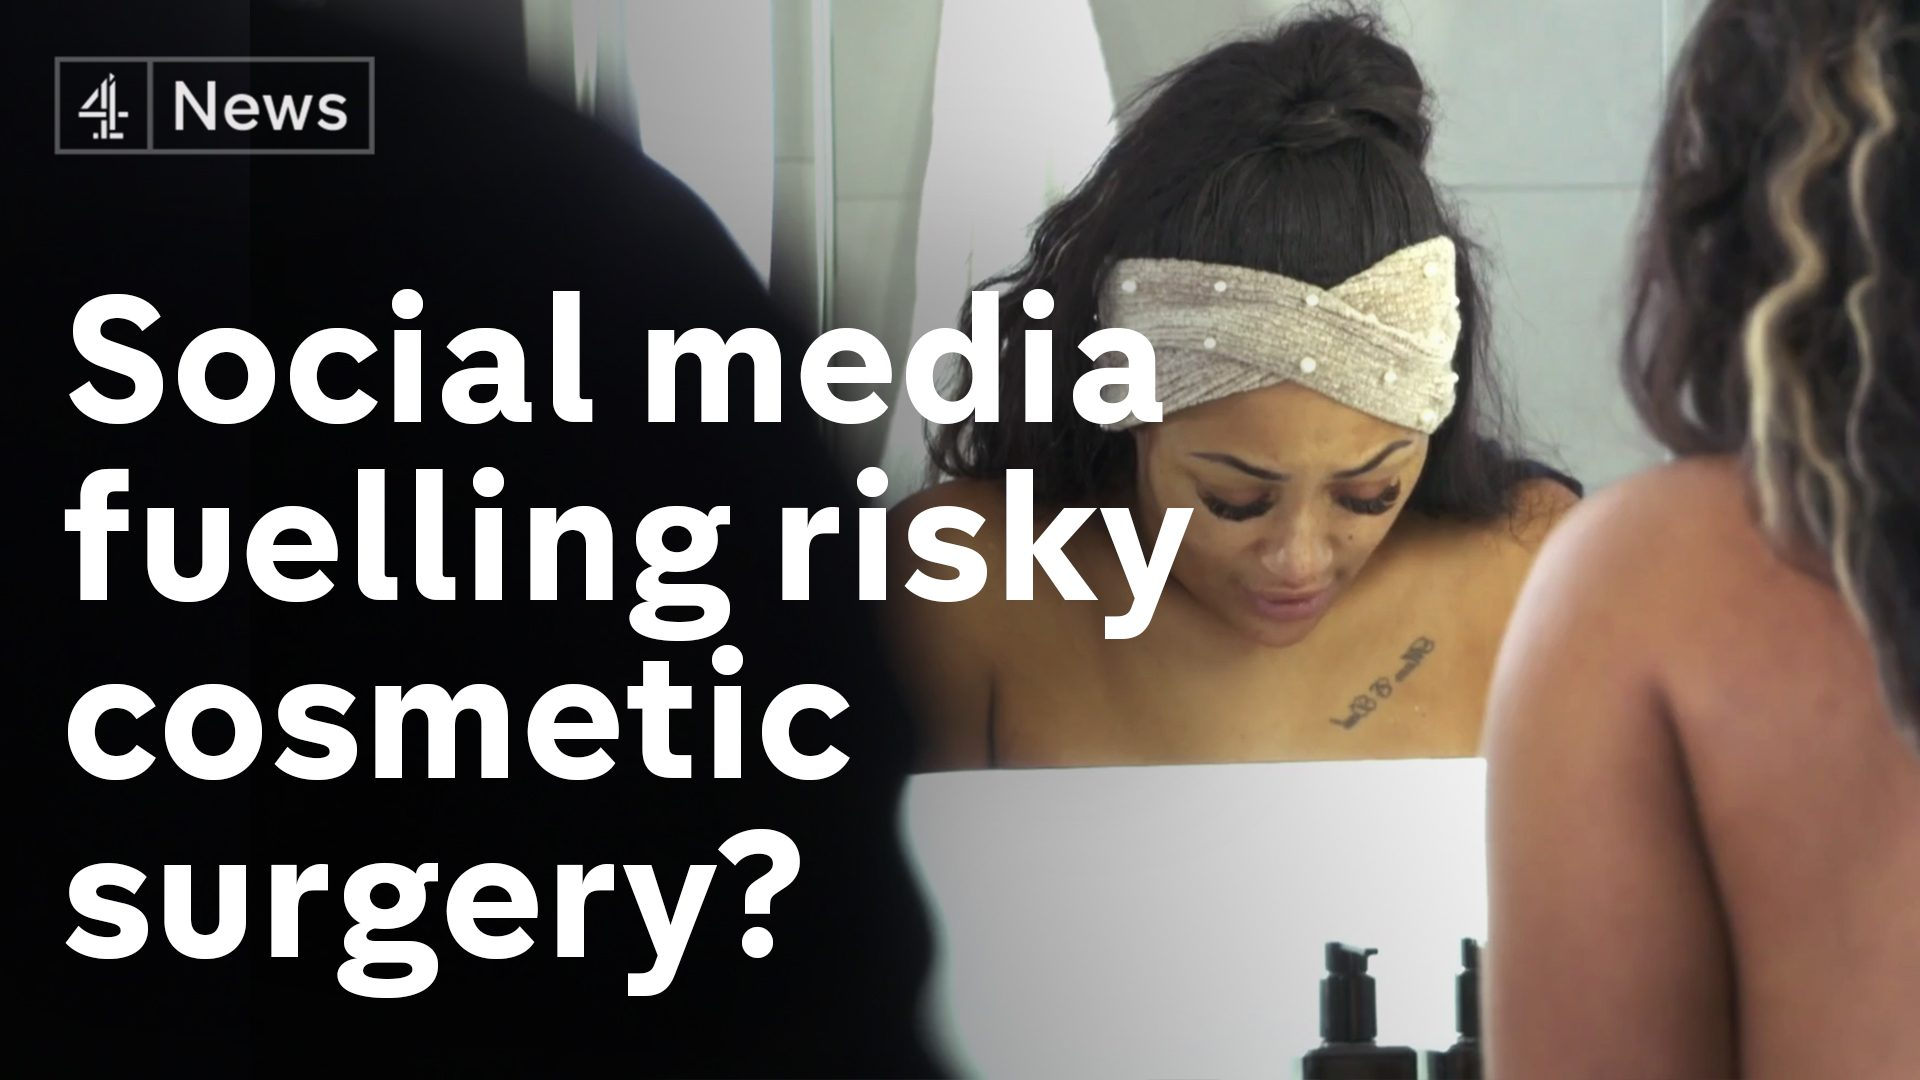 Is social media fuelling risky cosmetic surgery and body dysmorphia? - channel 4